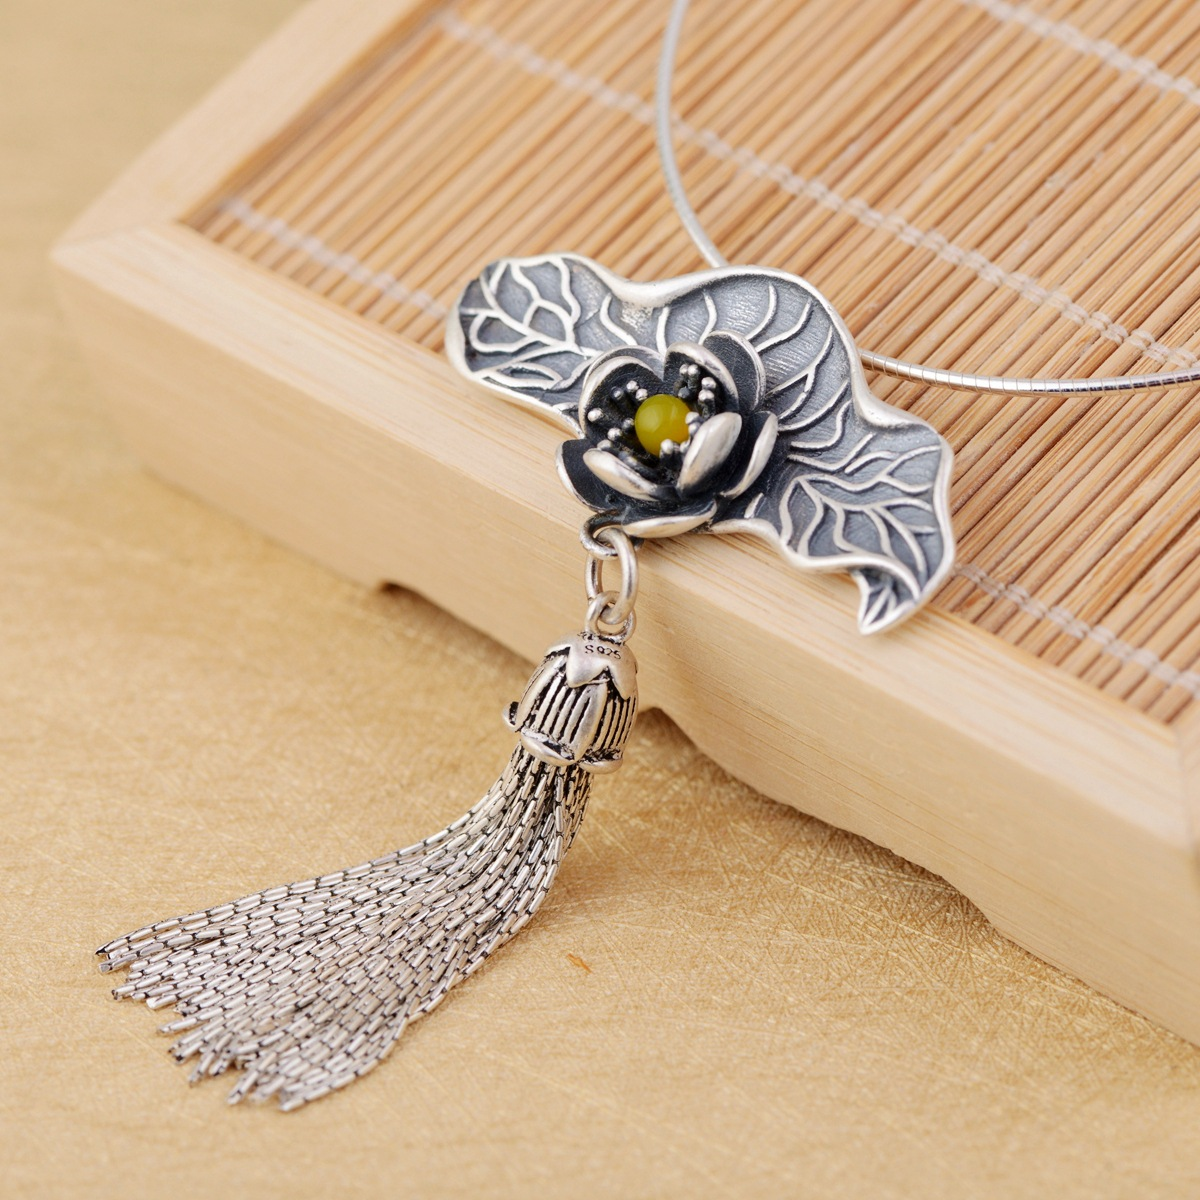 New fashion wholesale jewelry line 990 silver tassel pendant Archaize process Set new topaz pulpNew fashion wholesale jewelry line 990 silver tassel pendant Archaize process Set new topaz pulp